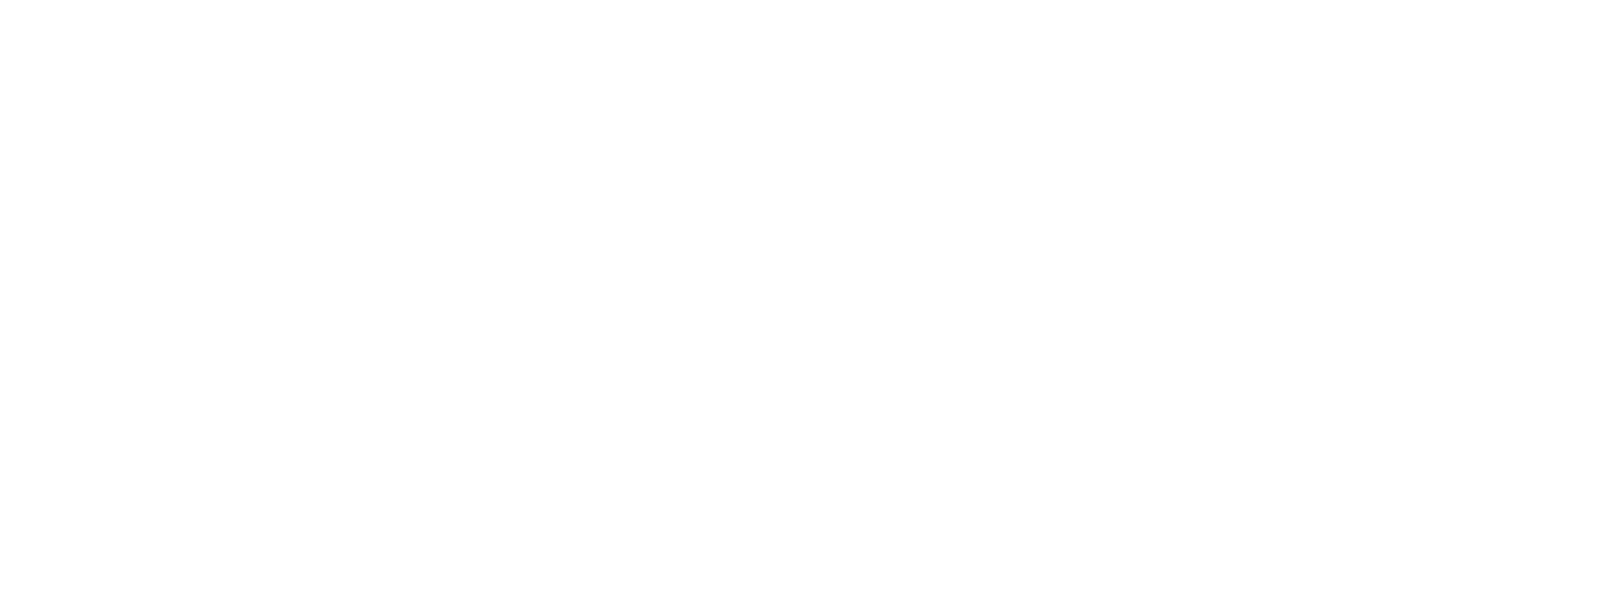 Beautiful Brows and Lashes Professional & Lash Lift Store Distribution-2